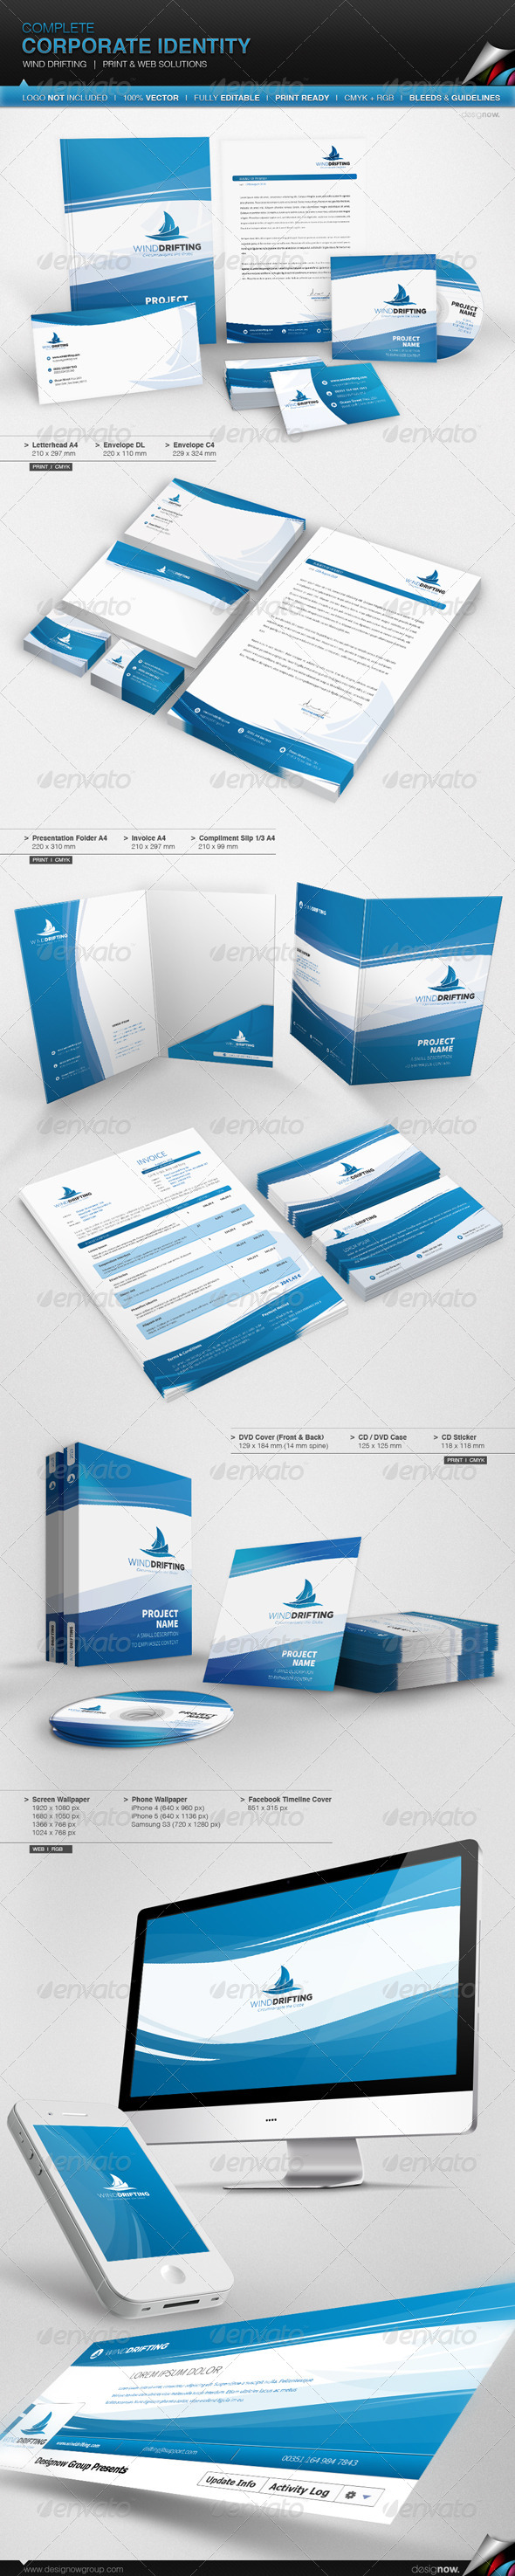 Corporate Identity - Wind Drifting - Stationery Print Templates